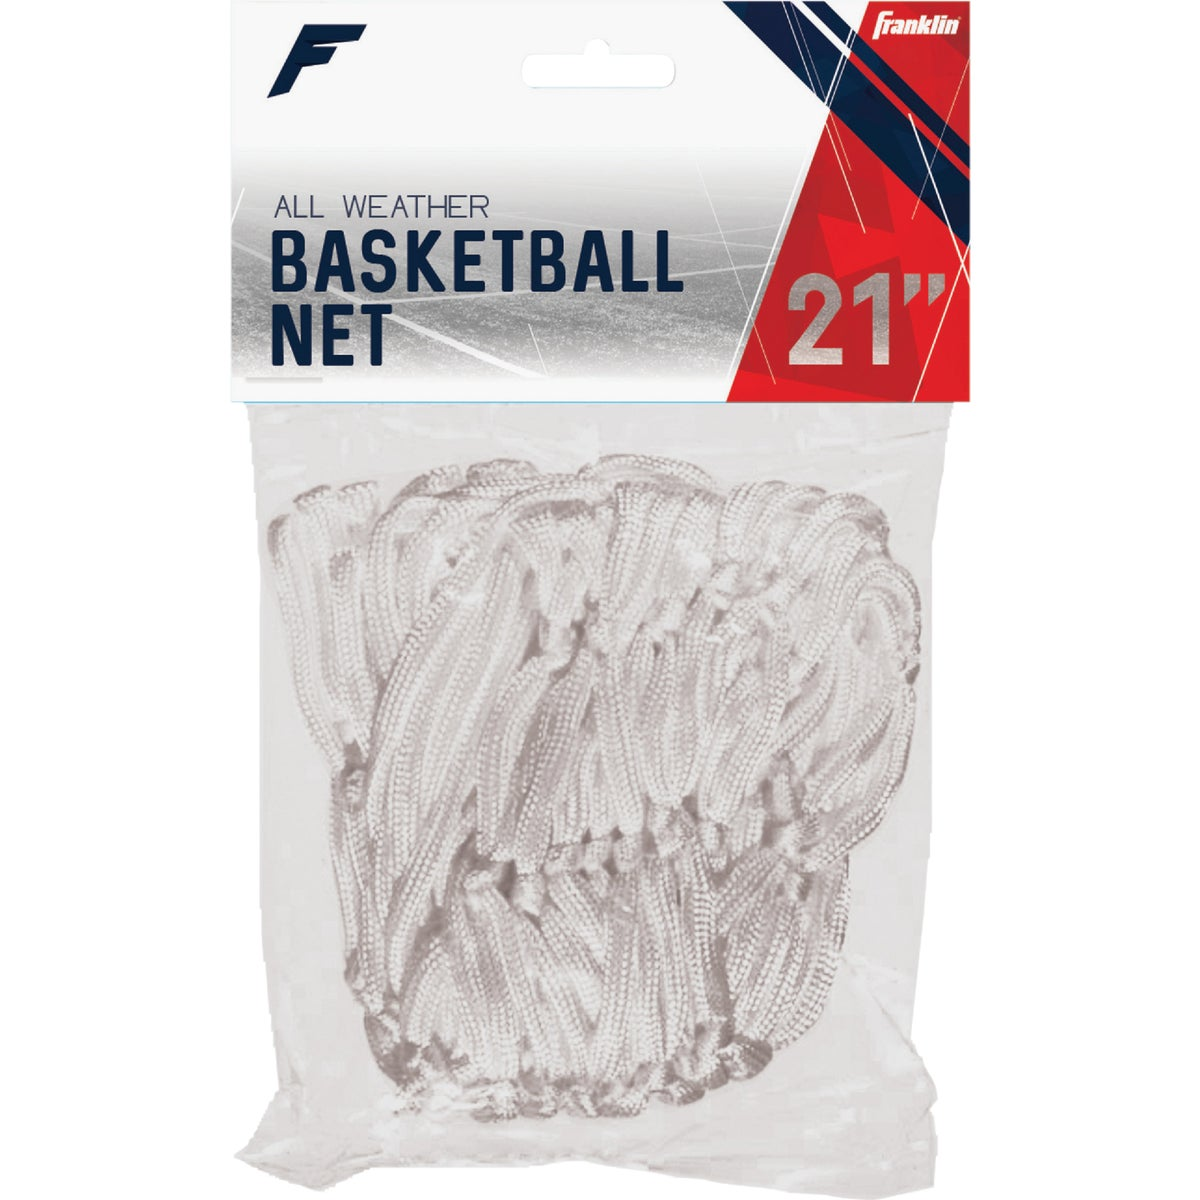 WHT BASKETBALL NET - 8284SR by Huffy Sports